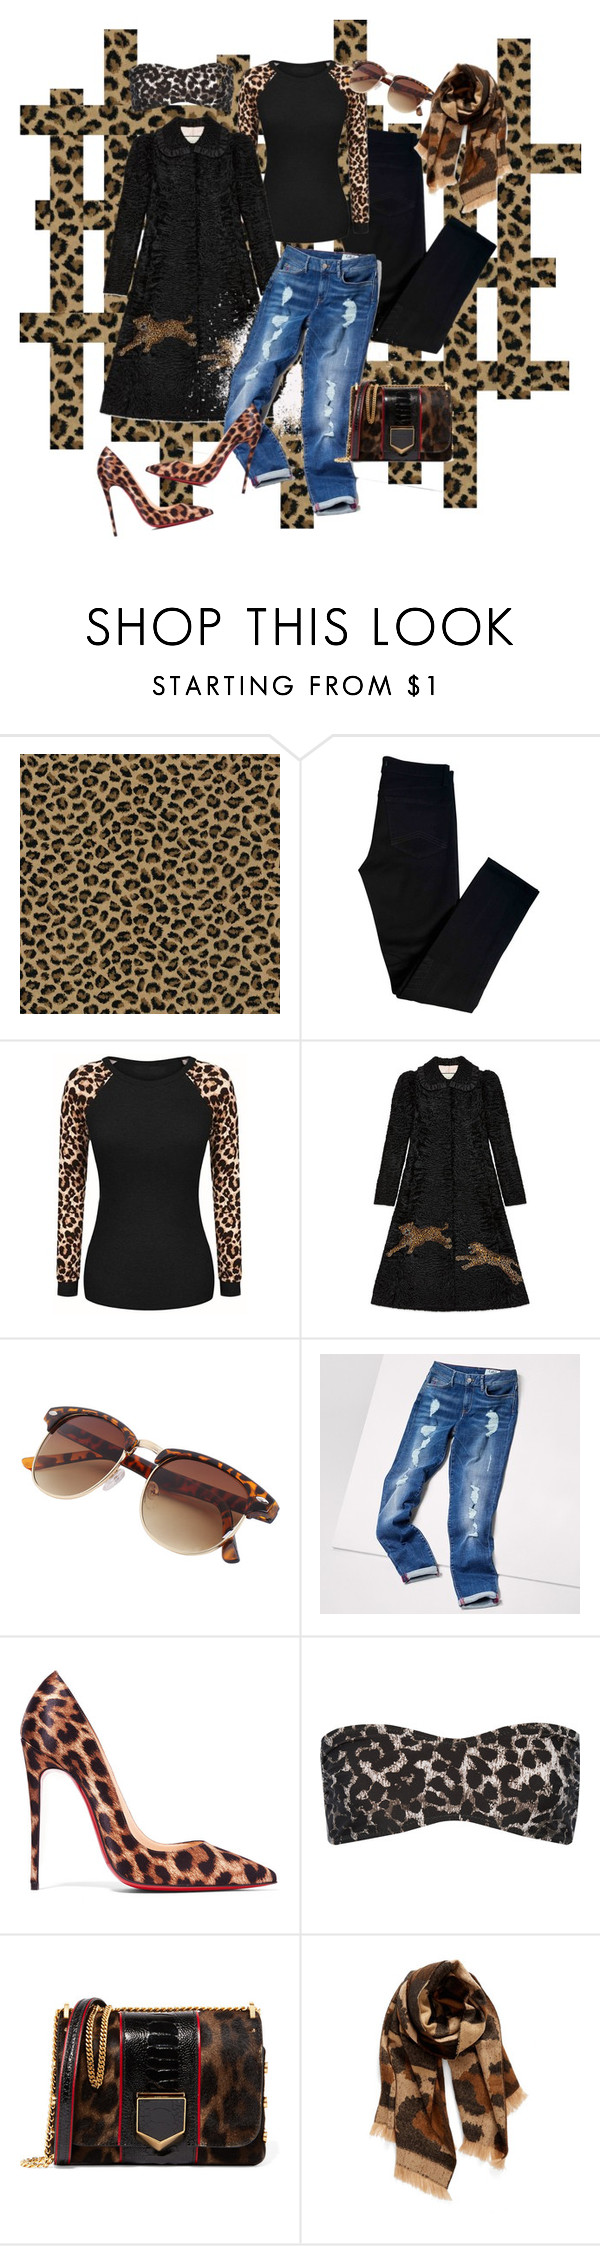 """""""Leopardly Theme With Distressed Denim"""" by farrahdyna ❤ liked on Polyvore featuring J Brand, Gucci, Tommy Hilfiger, Christian Louboutin, Norma Kamali, Jimmy Choo, BP. and distresseddenim"""